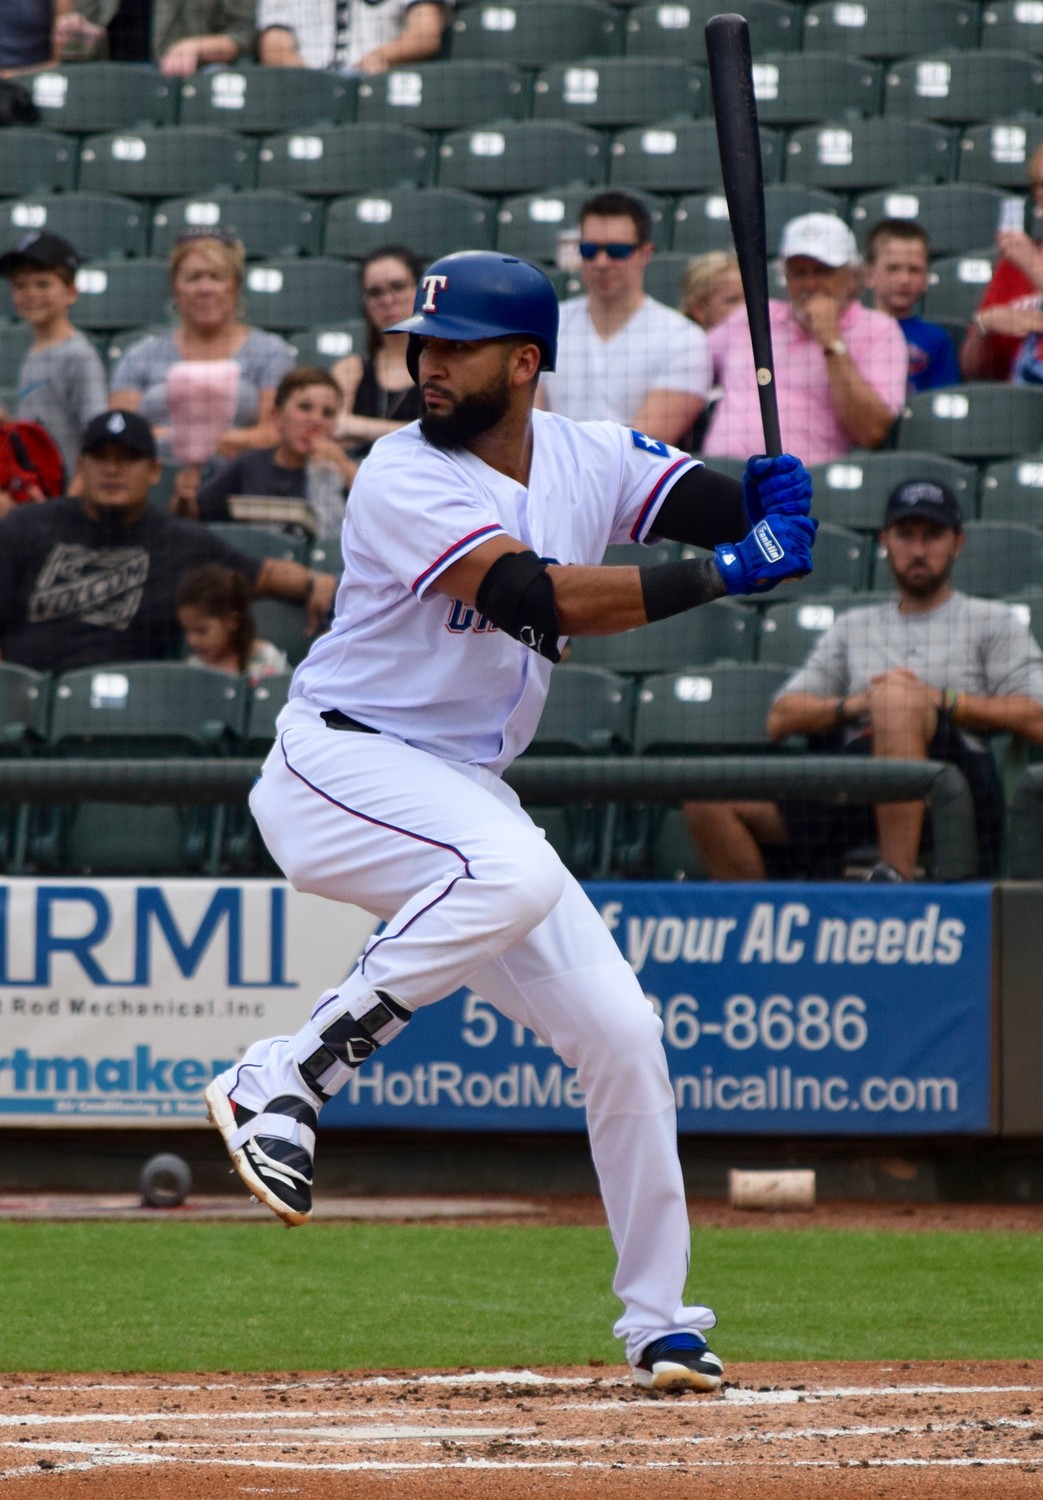 Nomar Mazara injured his thumb diving for a catch in right field against the Baltimore Orioles on July 14 and is hitting .272 with 15 home runs, 58 RBIs and one stolen base in 91 big-league games this season.